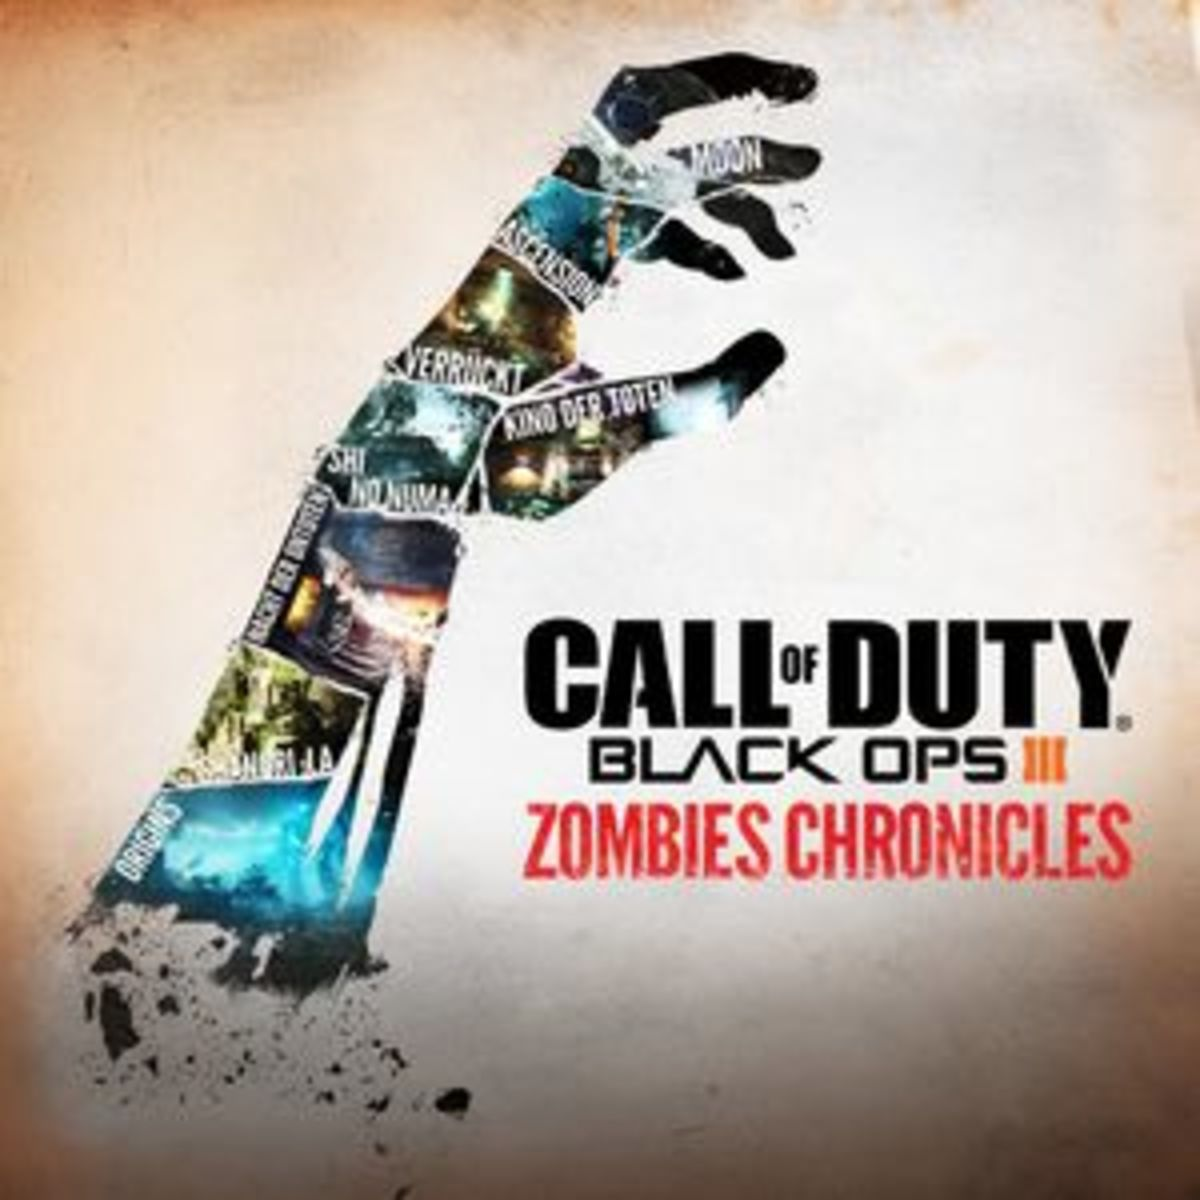 Release poster from Call of Duty: Black Ops III Zombies Chronicles.